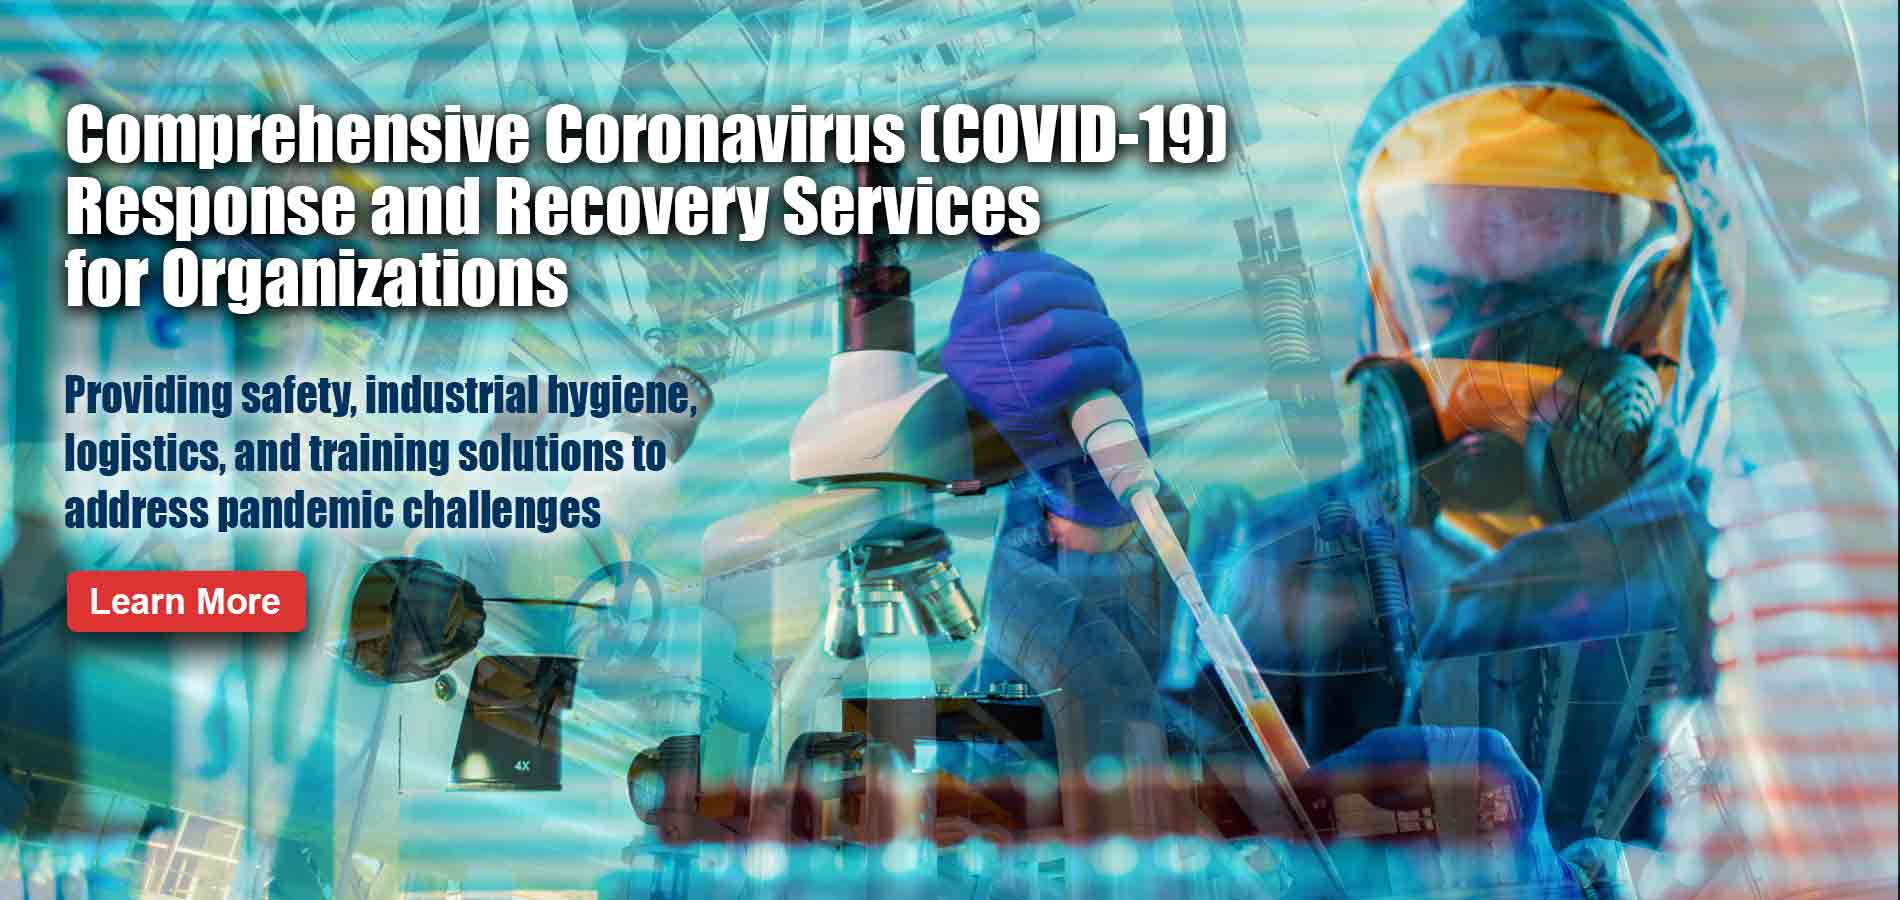 COVID-19 Response and Recovery Services